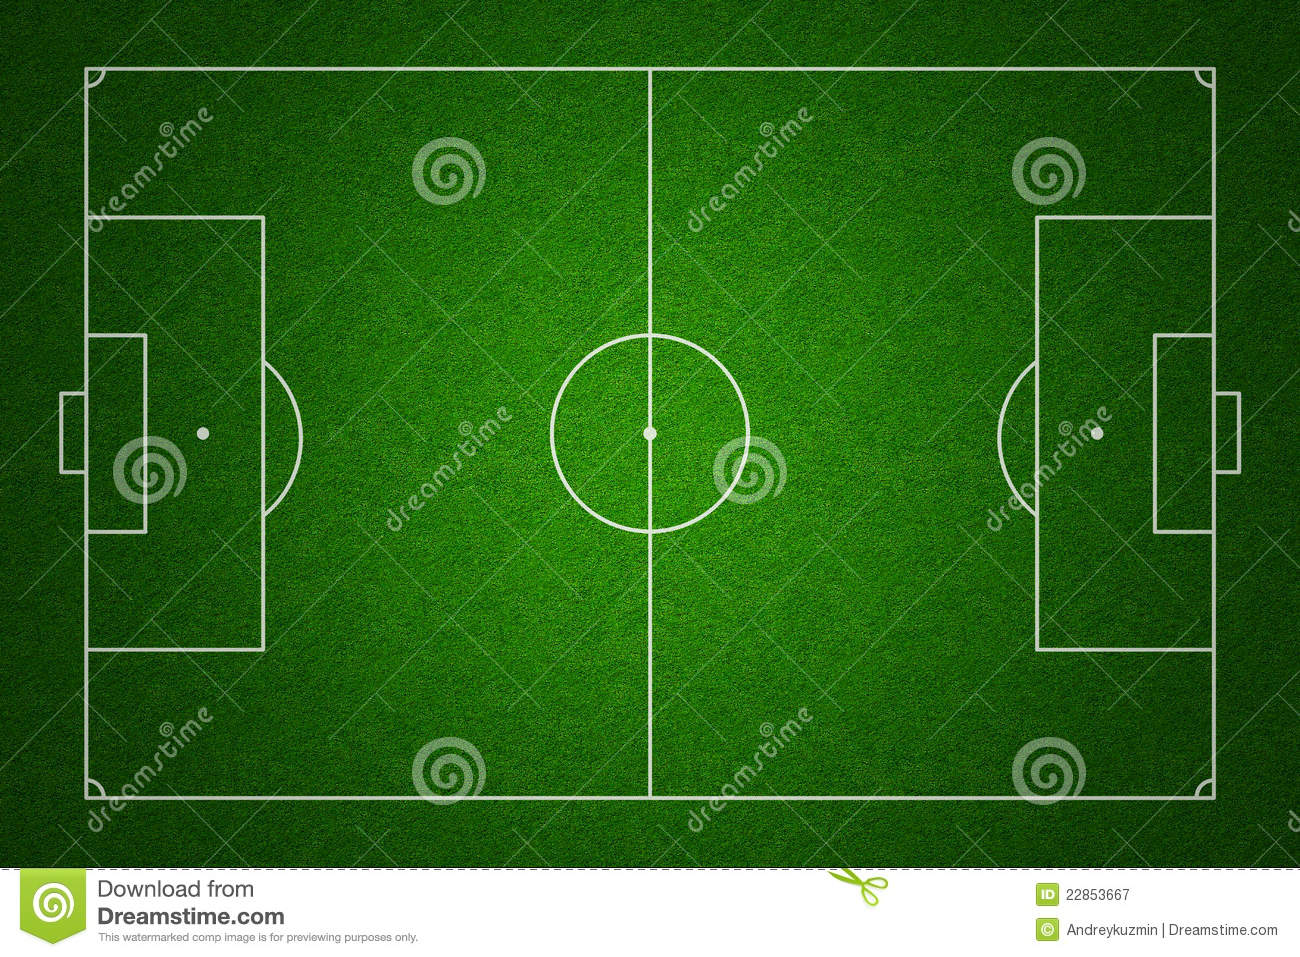 Football Field Top View With Standard Markings Royalty